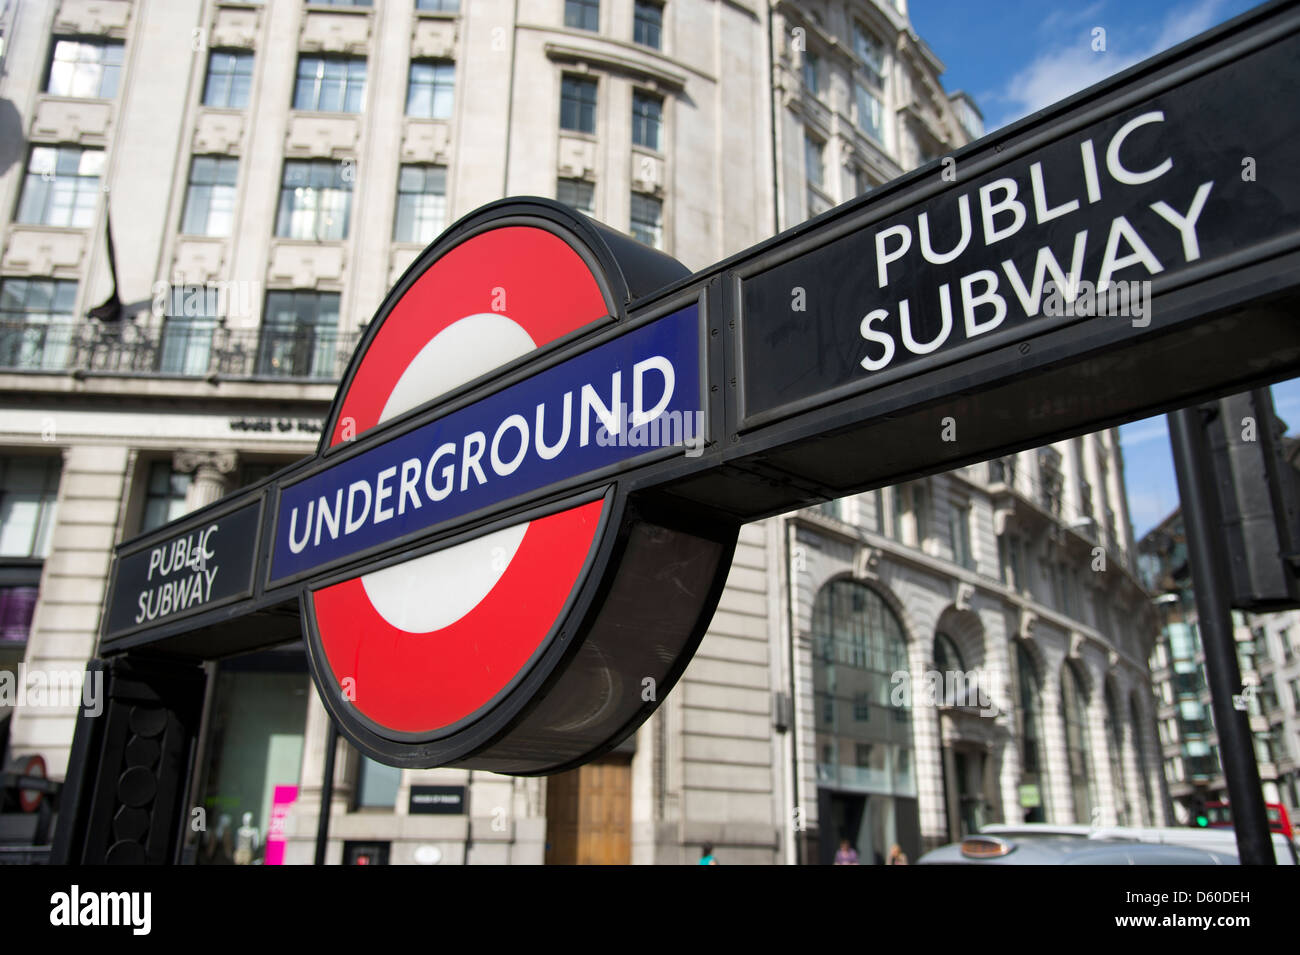 London Underground sign, Londres, Royaume-Uni Photo Stock